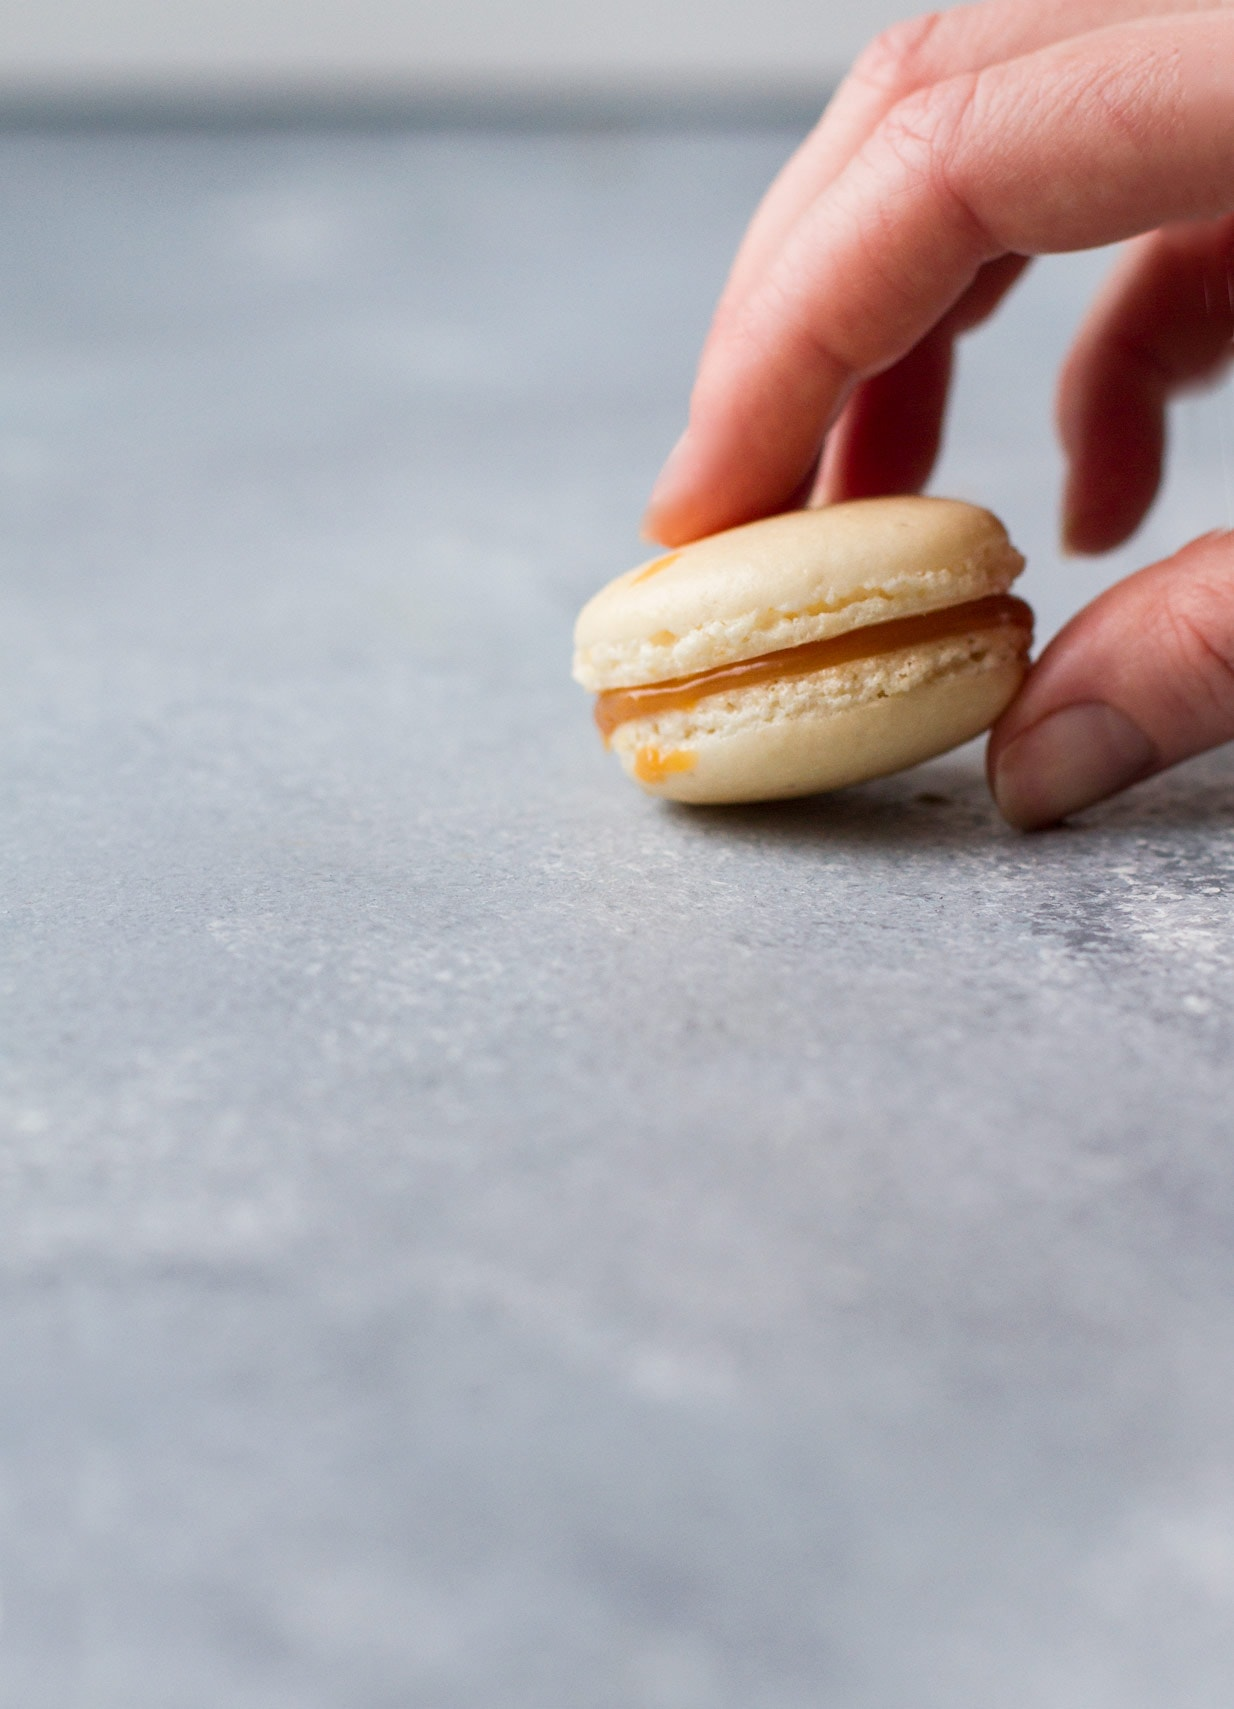 Hand reaching for one salted caramel macaron.